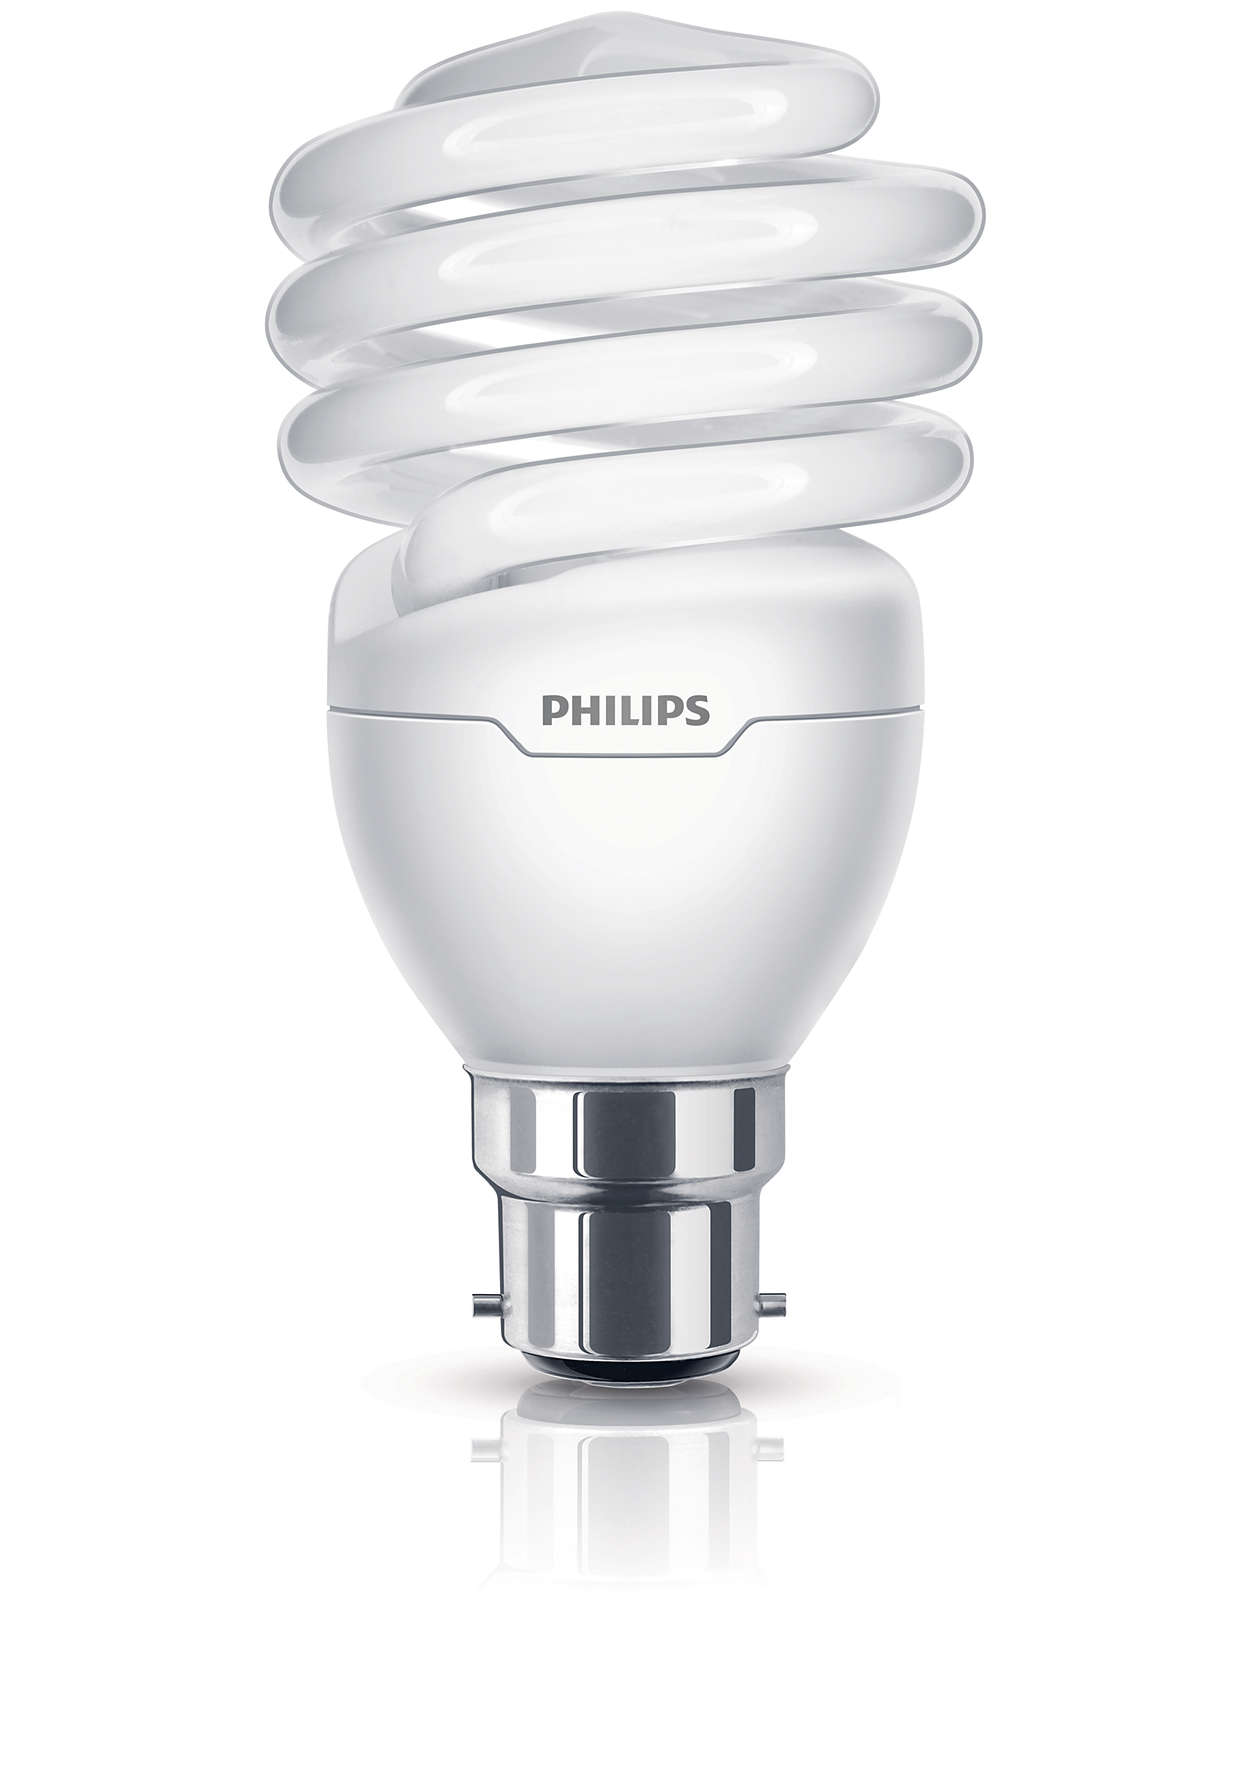 Tornado spiral energy saving bulb 8718291679226 philips Cost of light bulb